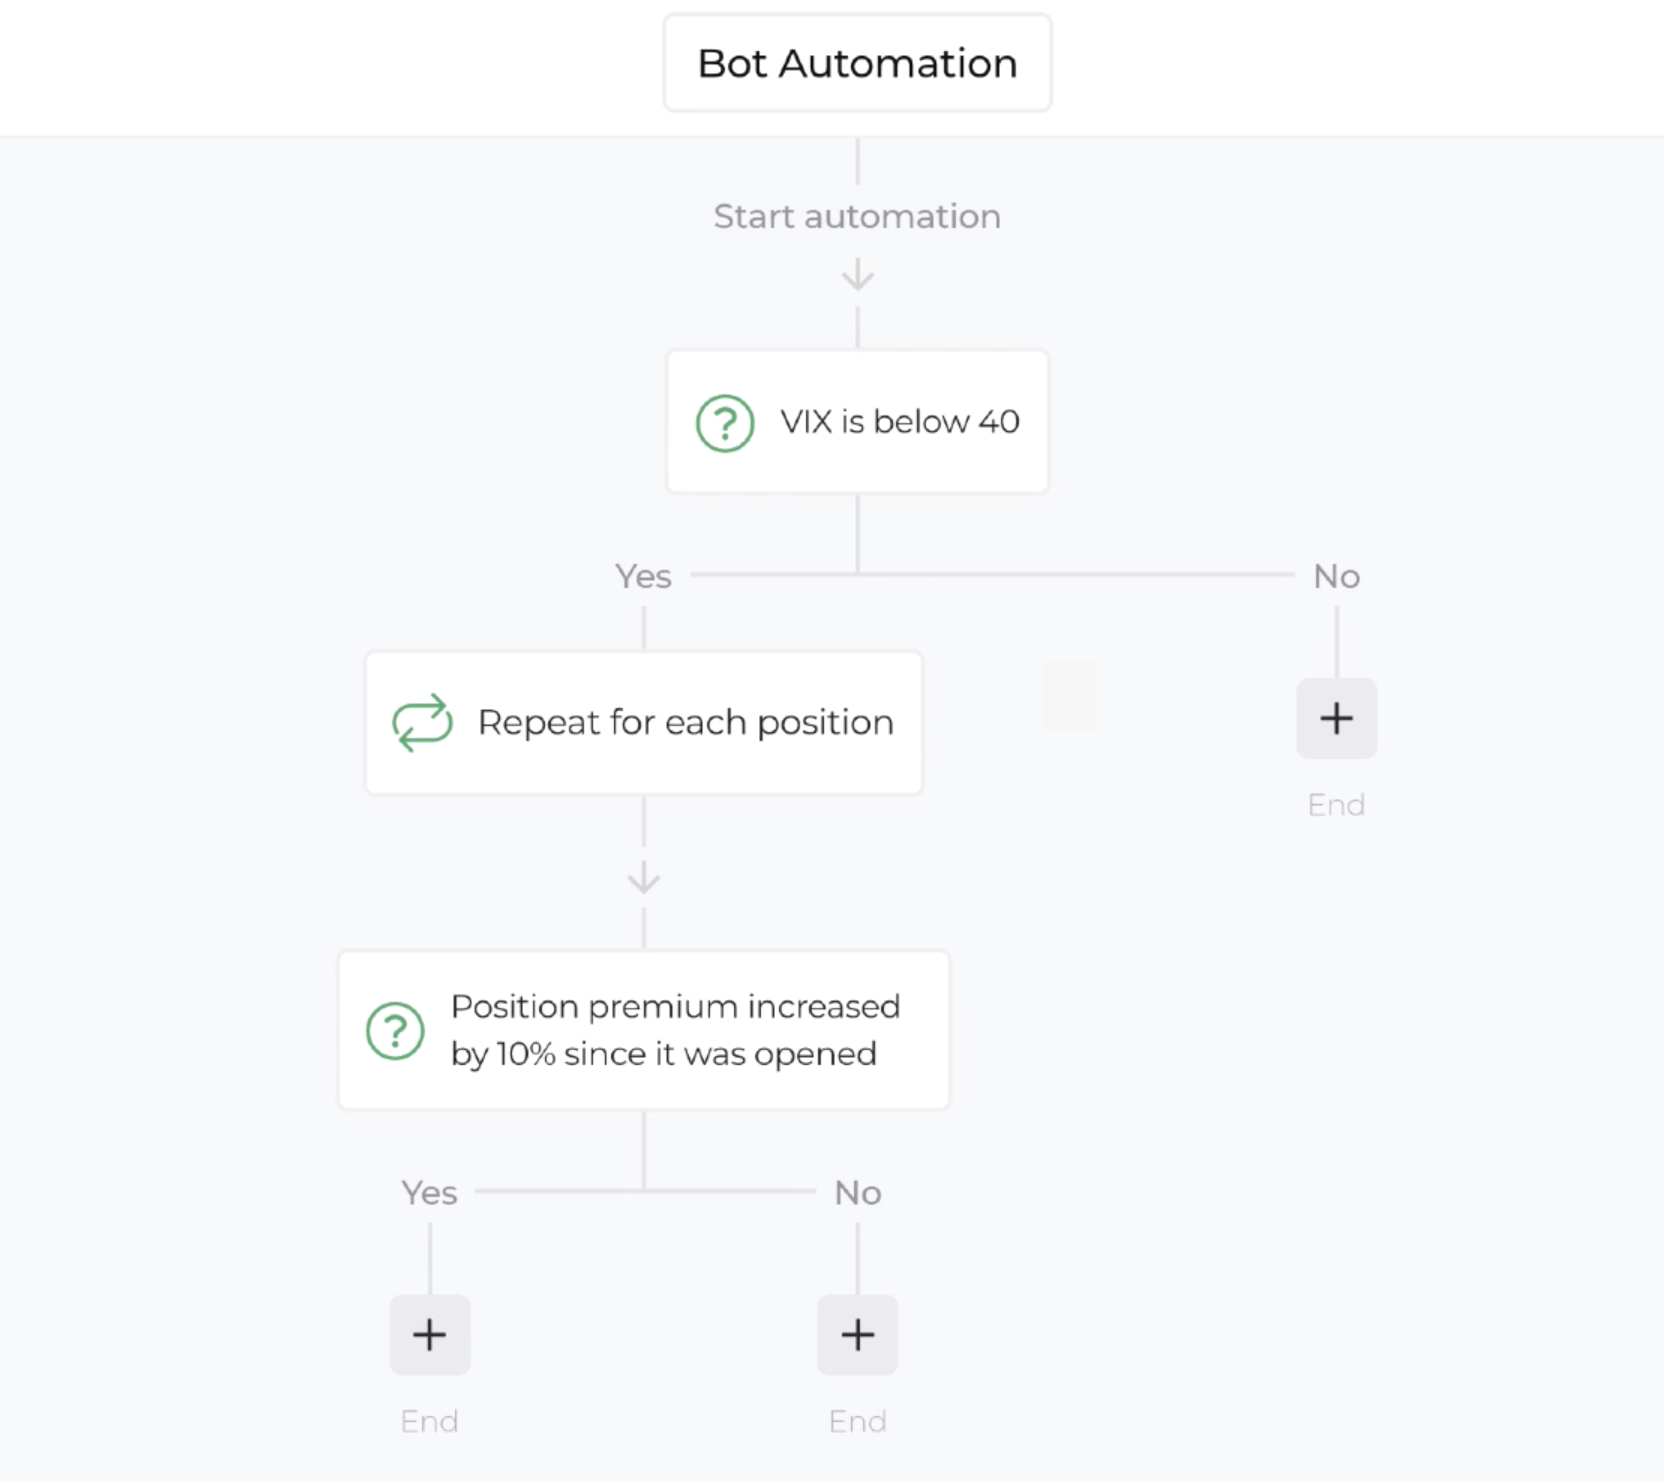 Screenshot with example of automation path through multiple decision steps